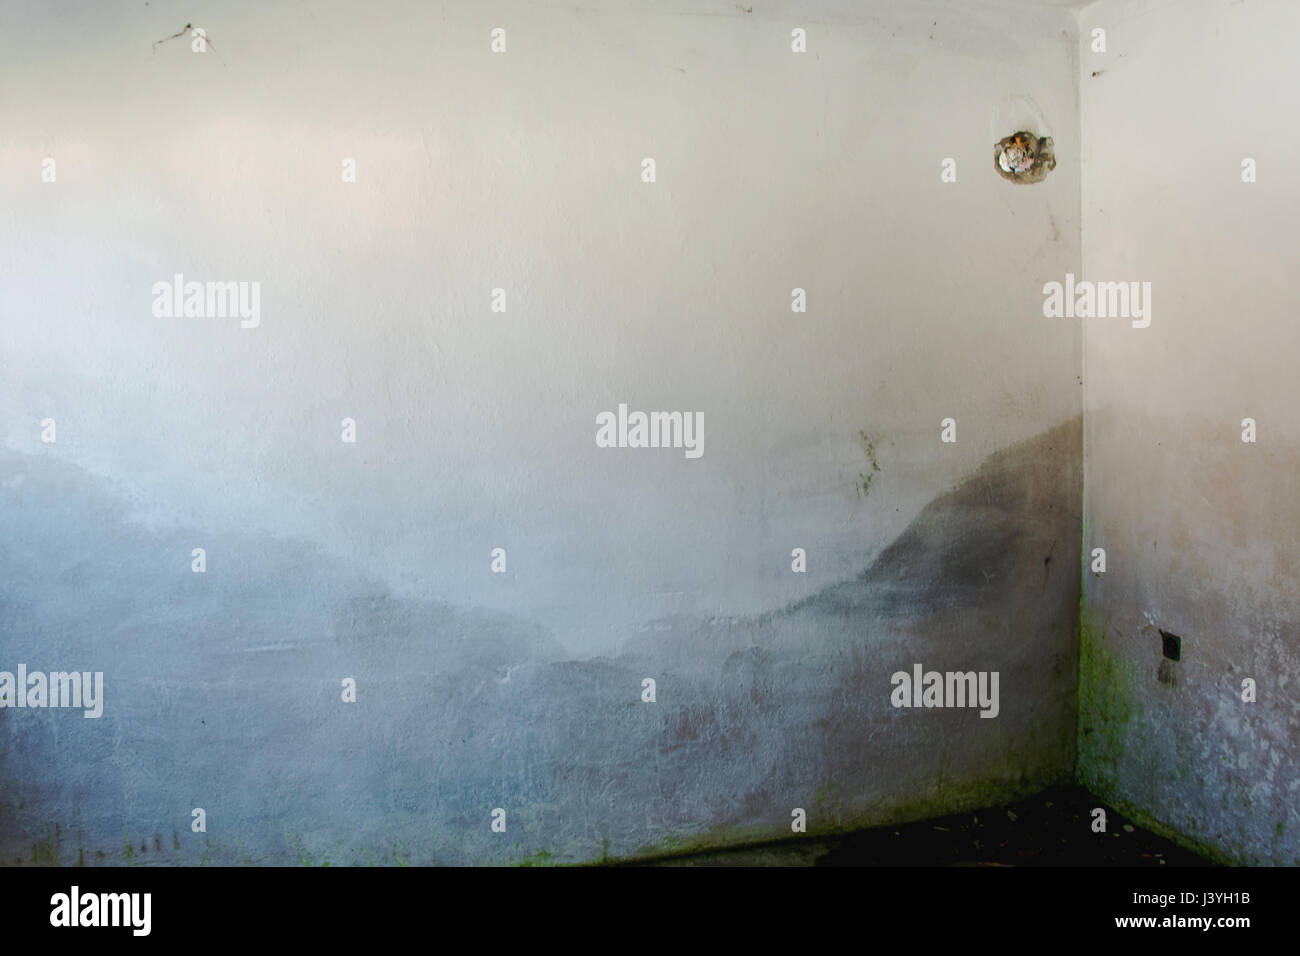 The moisture from the walls - Stock Image